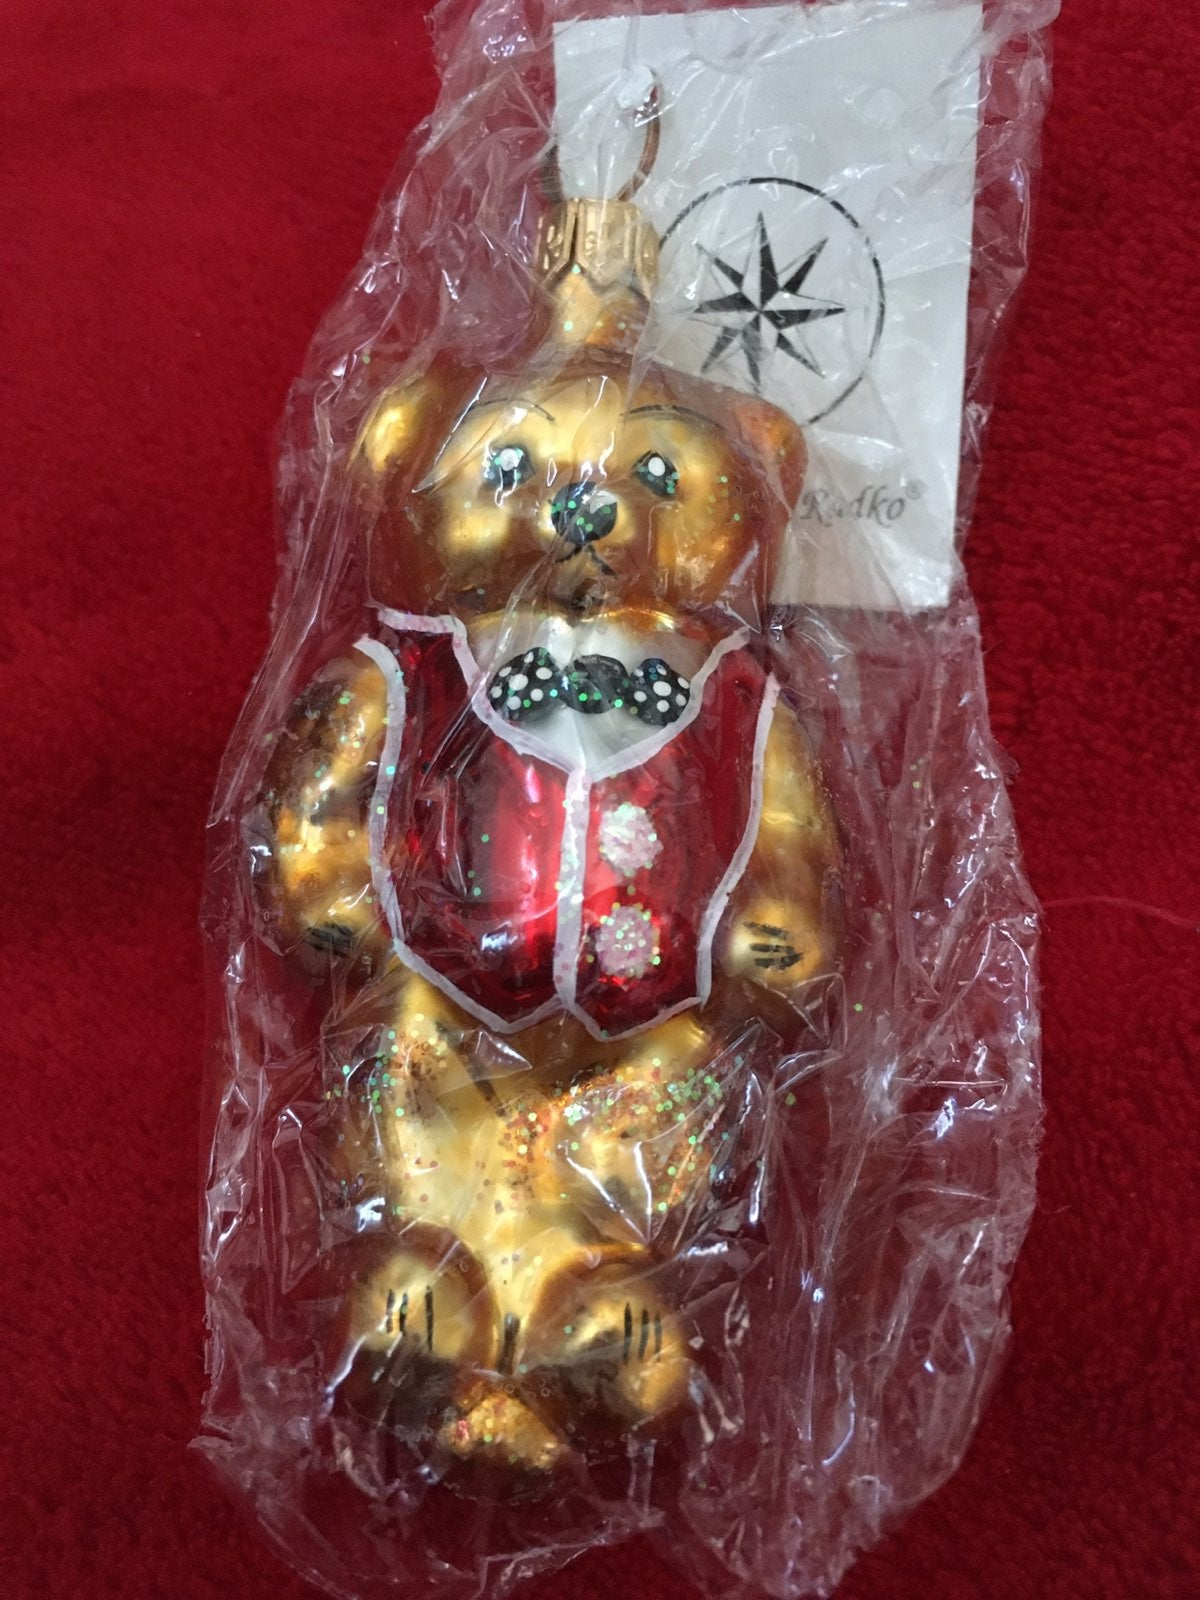 RARE 1996 Radko Bear Ornament